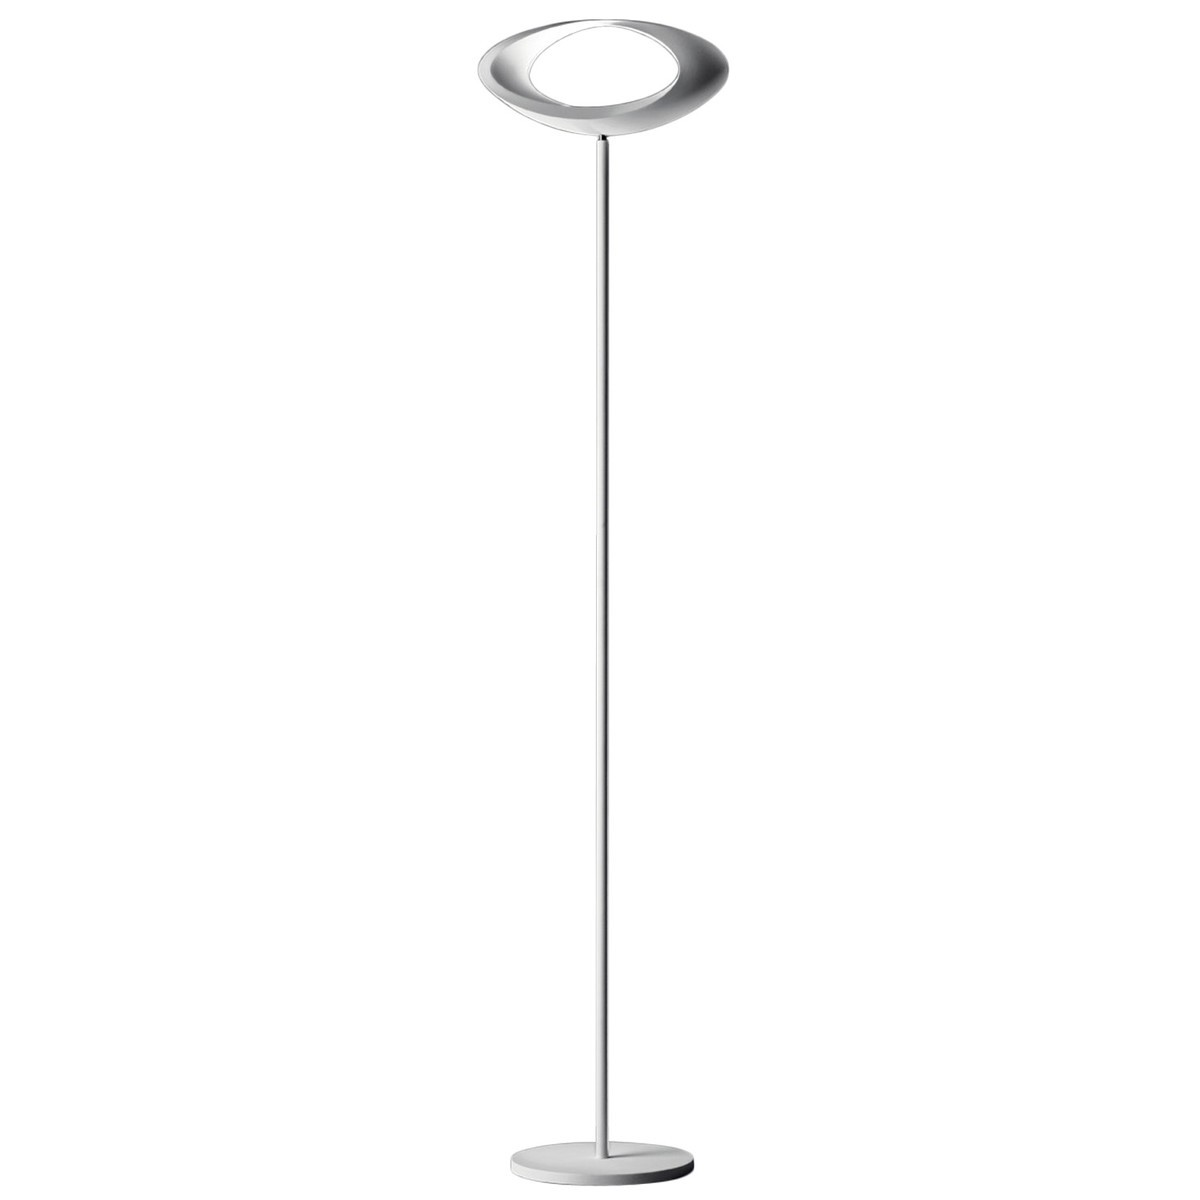 CABILDO LED floor lamp